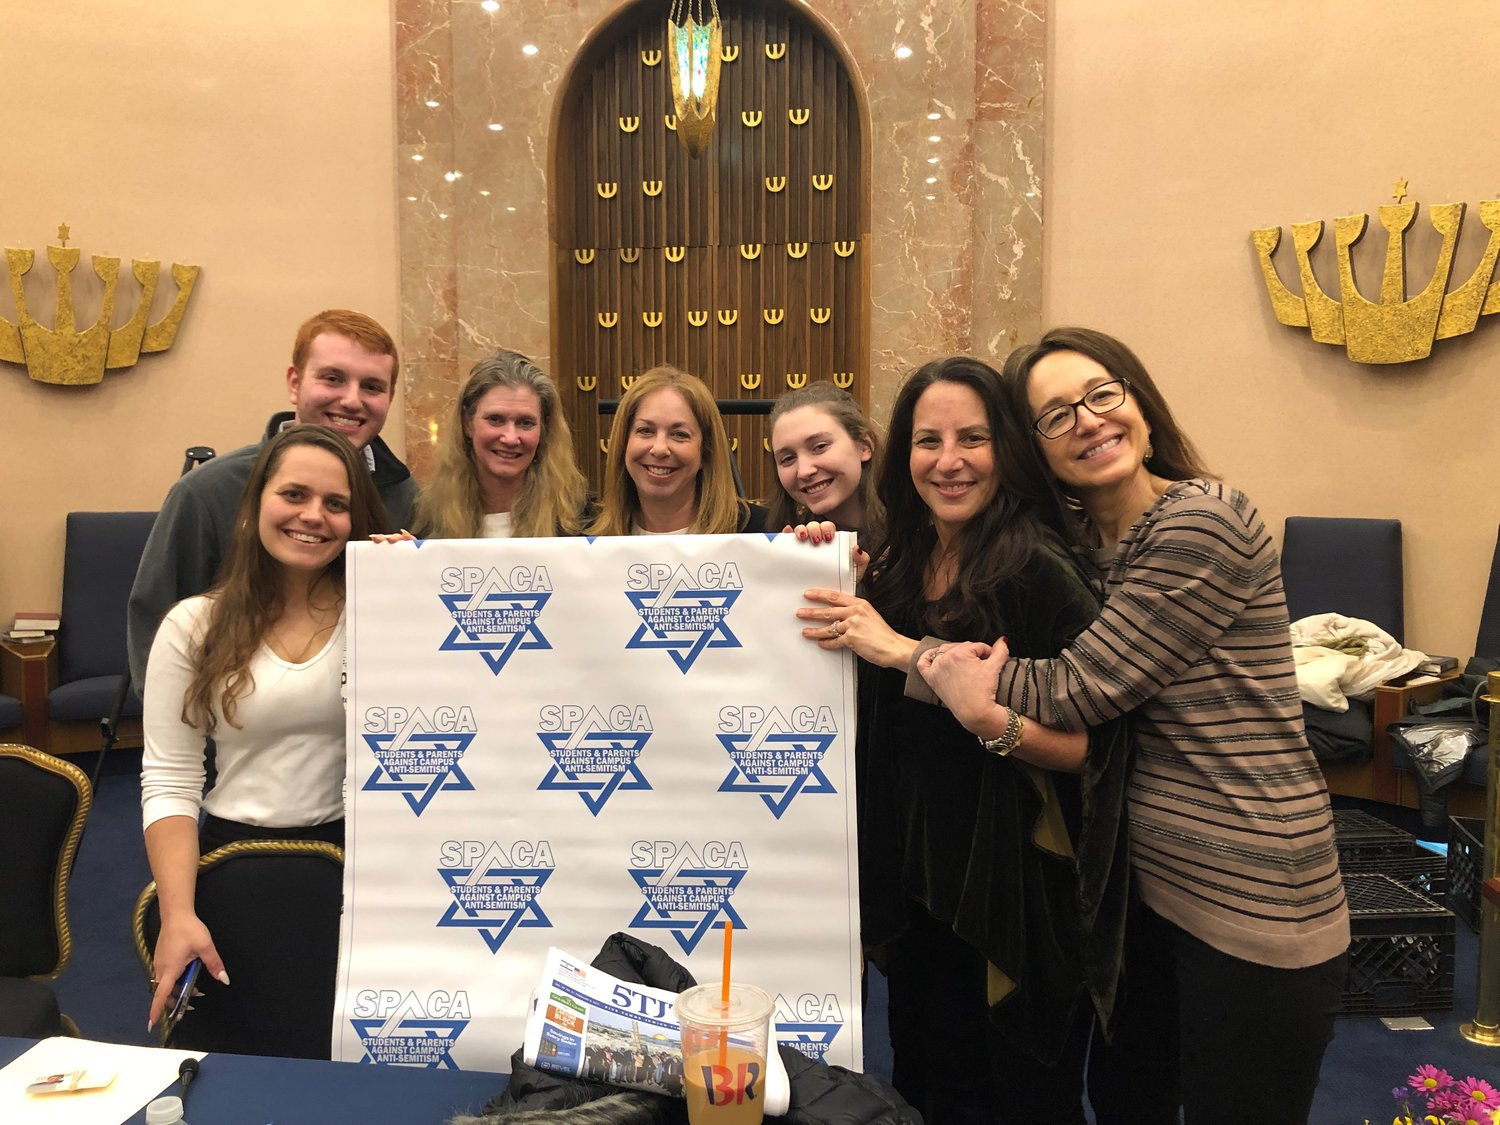 Panelists joined congregants at the Merrick Jewish Centre's recent event on campus anti-Semitism. Ofir Dayan, far left, Joshua Yoni Nierenberg, Tamar Ben-Simon, Sharon Freudenstein, Dalia Zagher, Leetal Ben-Simon and Shoshana Bederman.